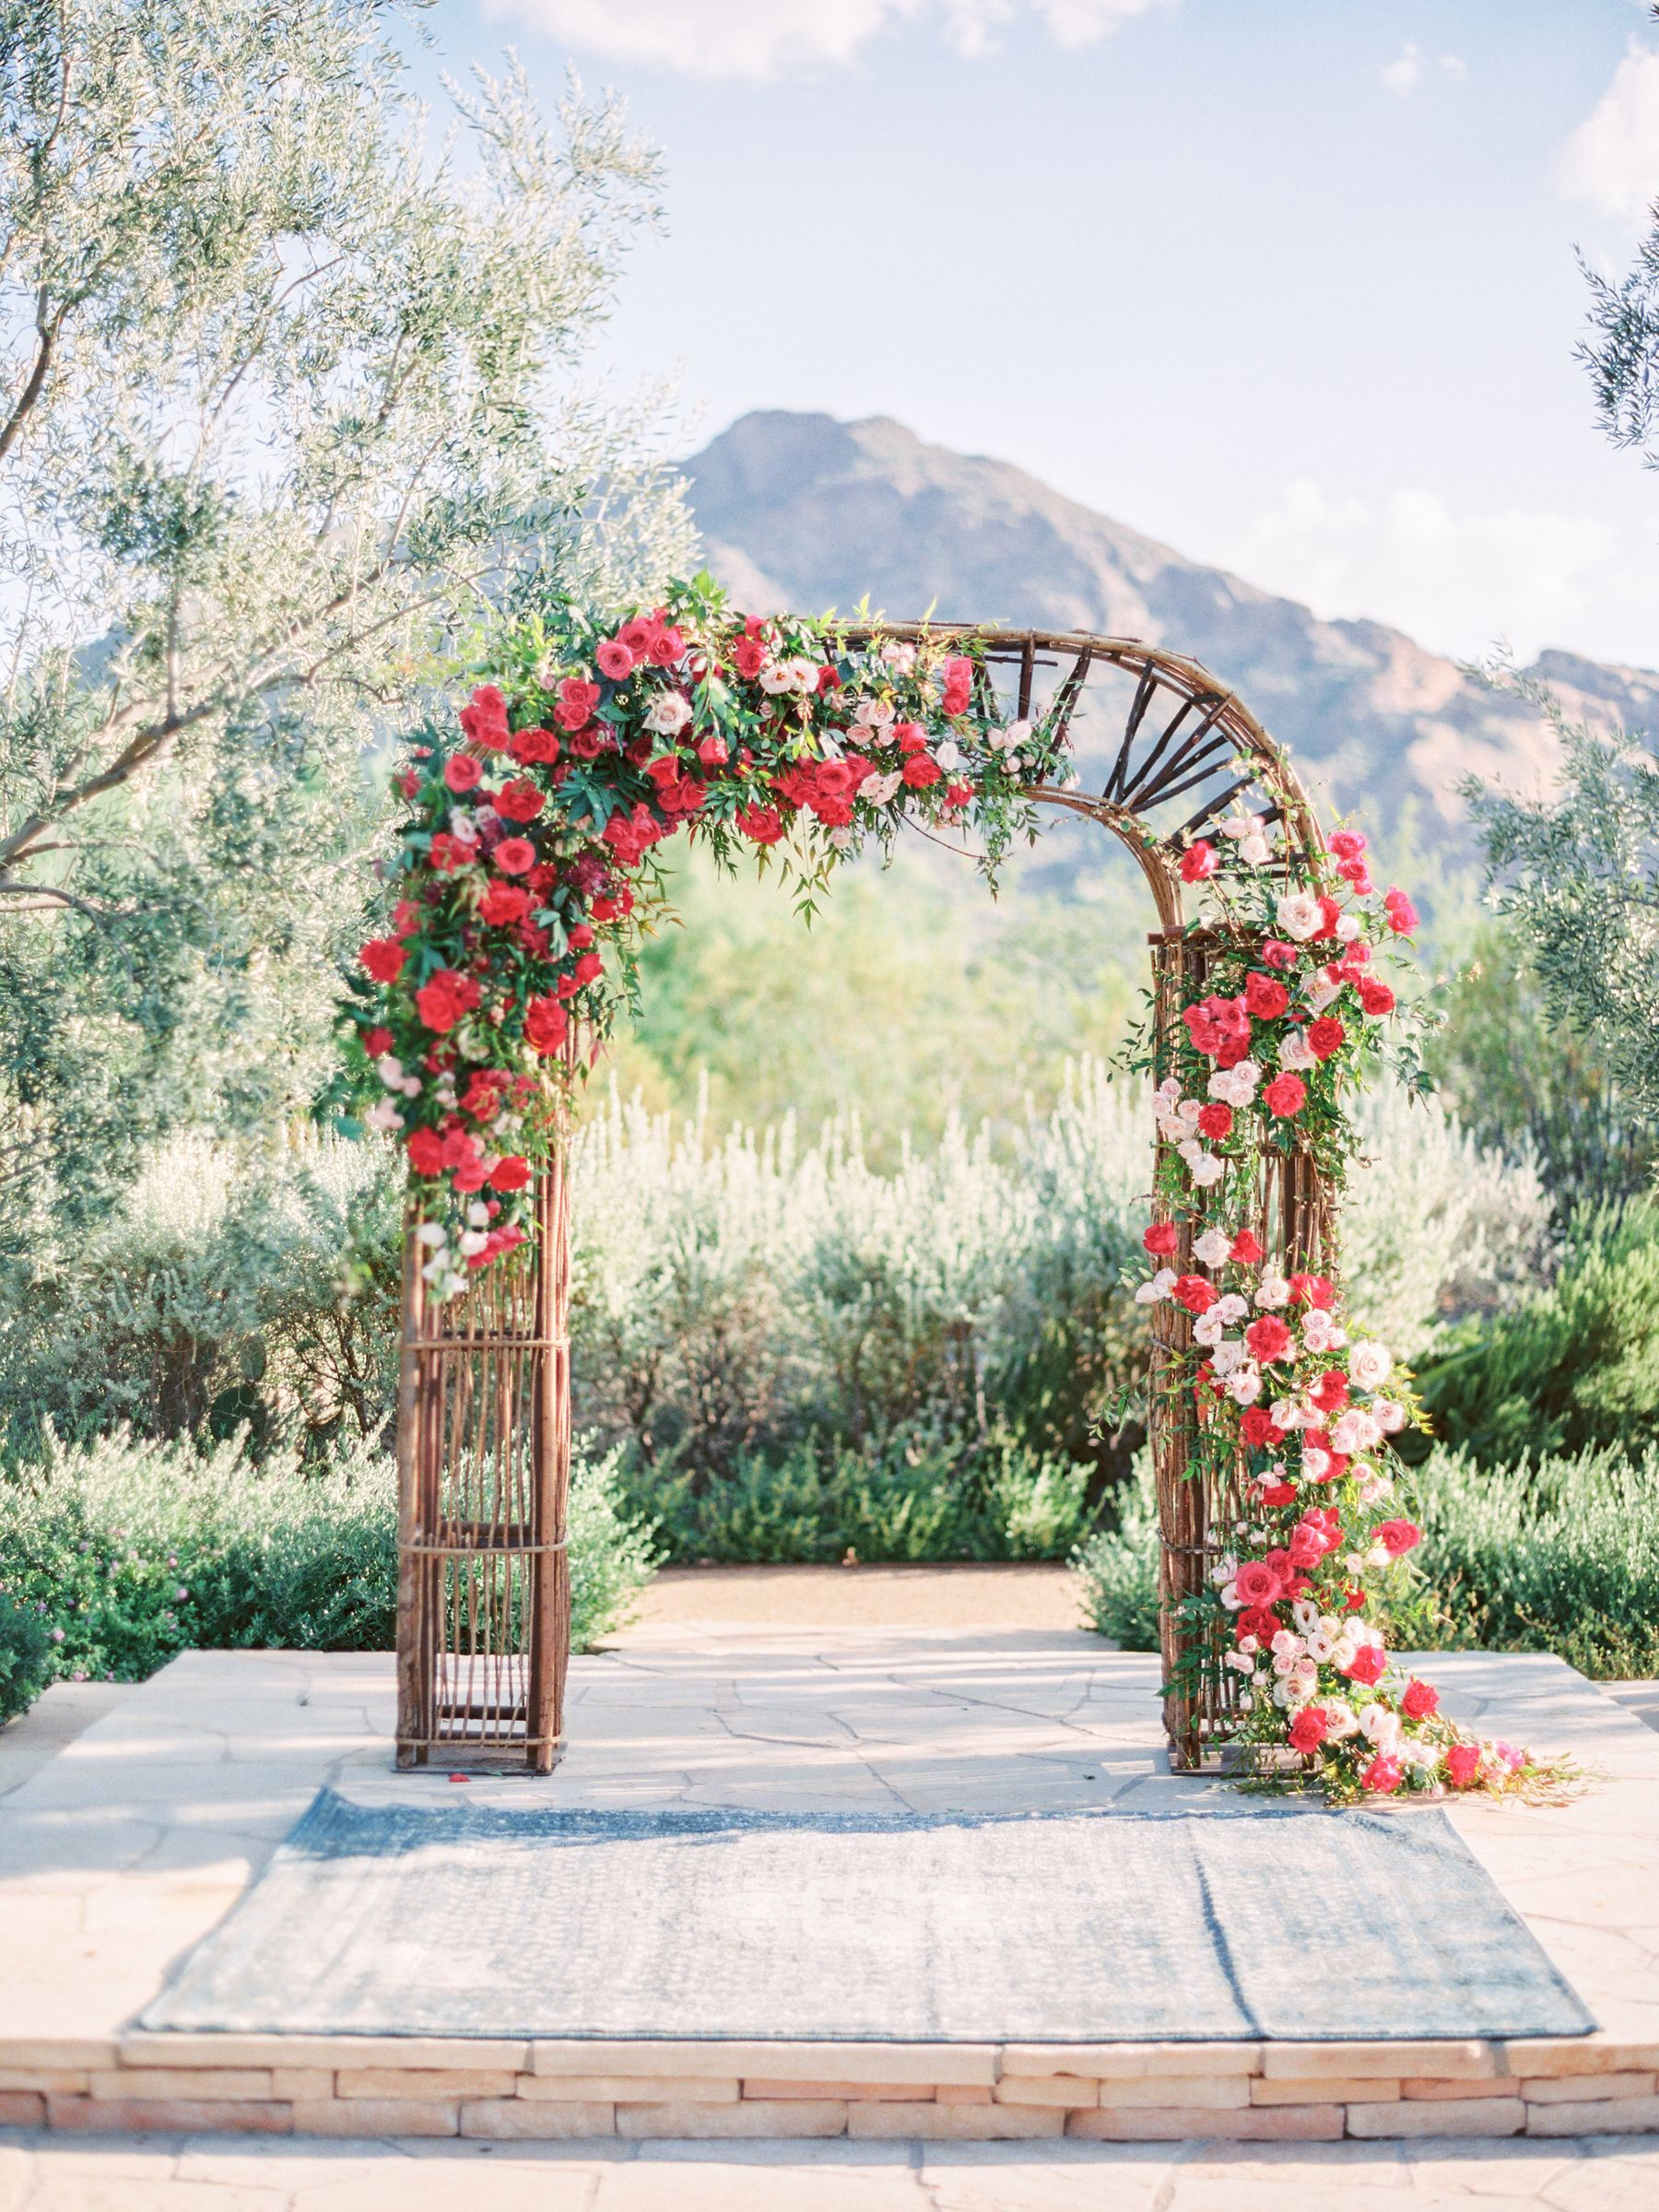 Our Enchanted Garden Arch With Decadent Red And Pink Roses Makes